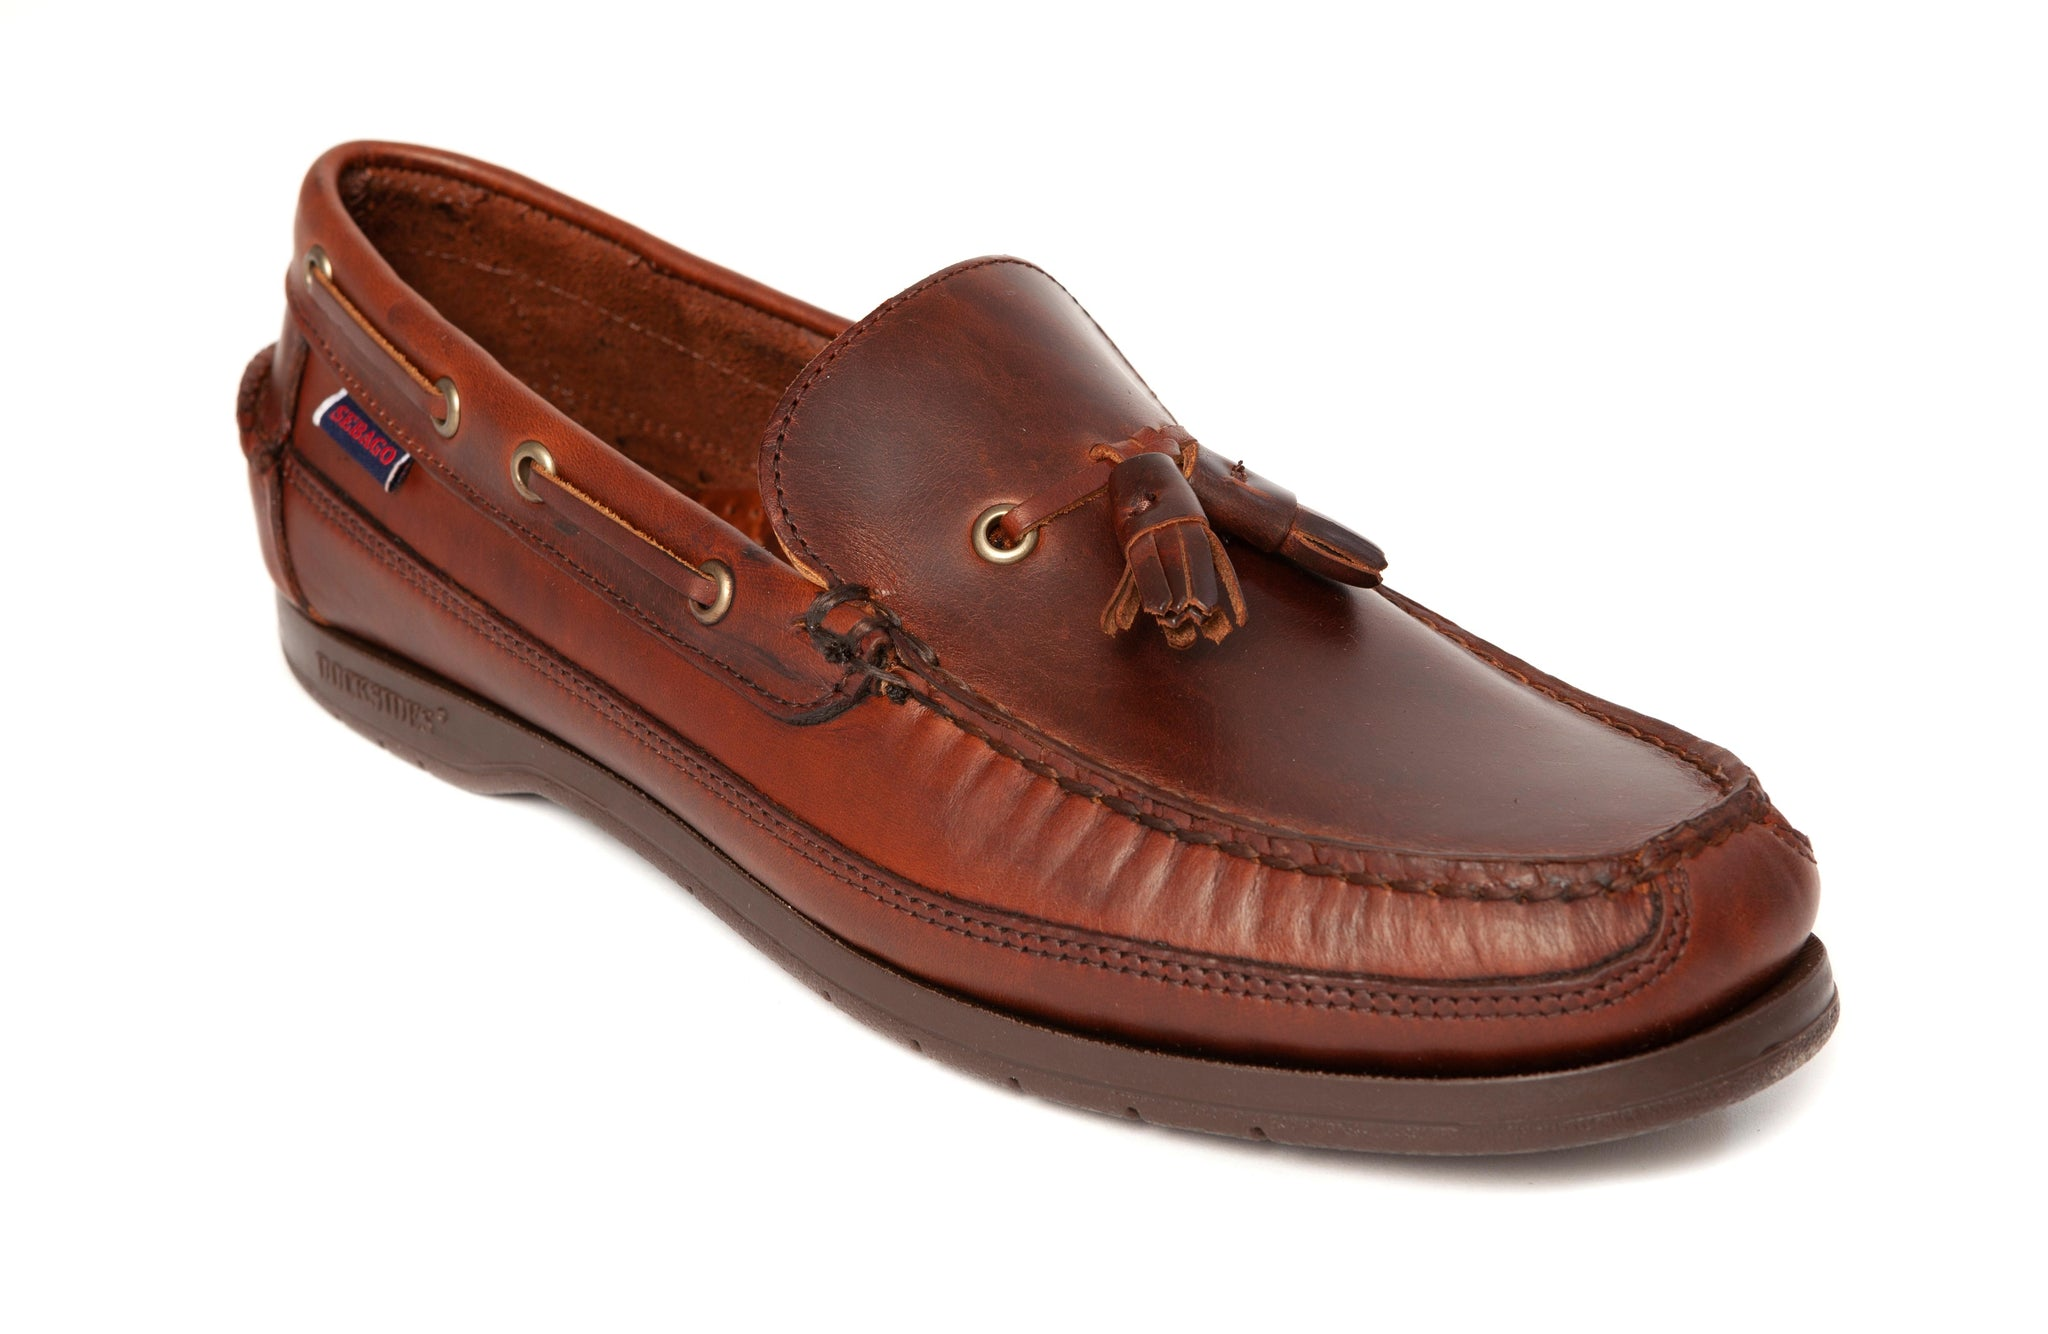 Sebago - Ketch Waxed Loafer - Brown - Regent Tailoring